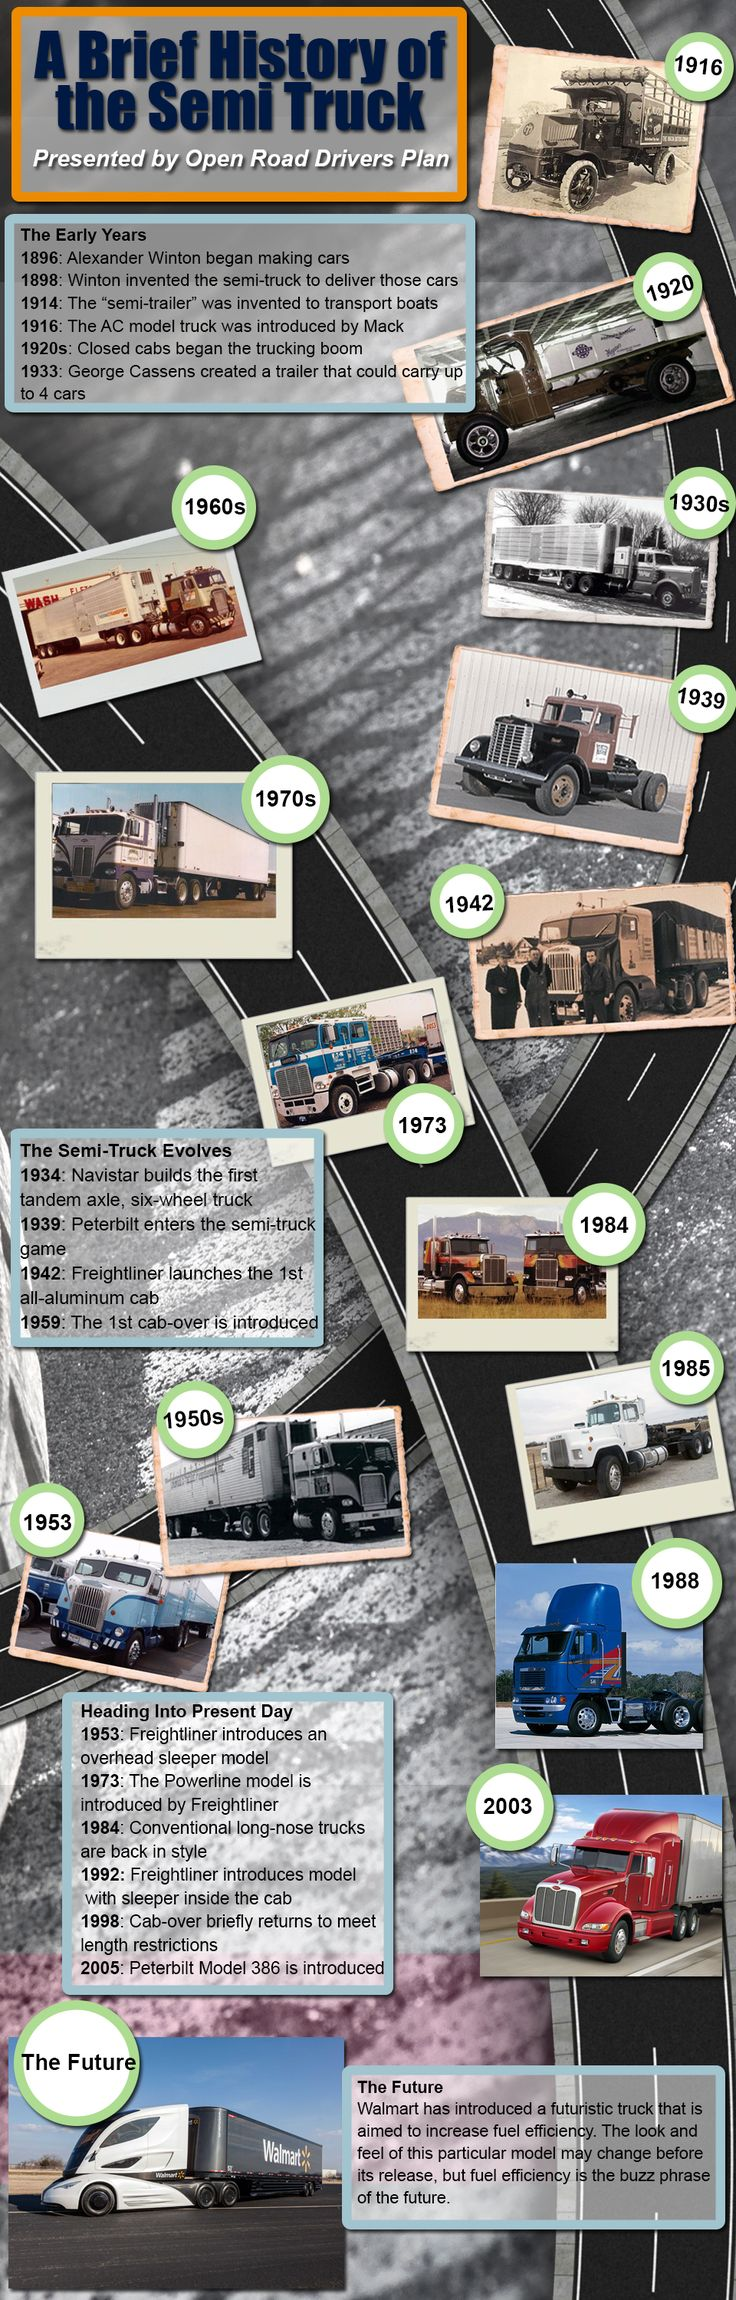 History of the Semi Truck #TruckerTuesday